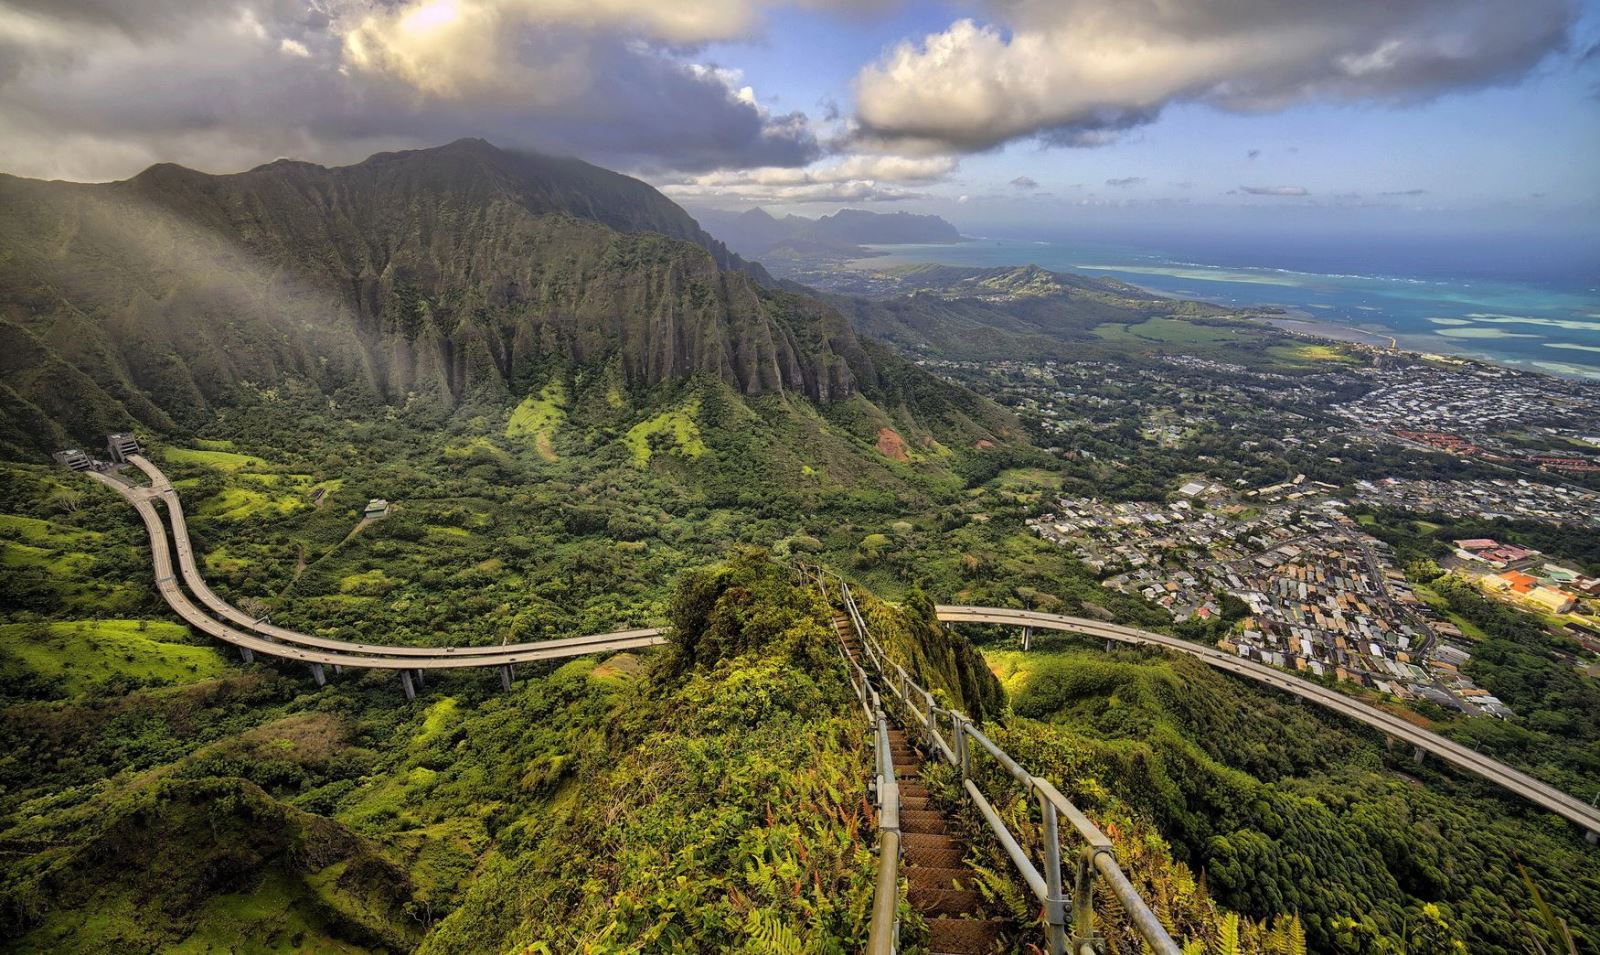 10. Haiku Stairs, Hawaii